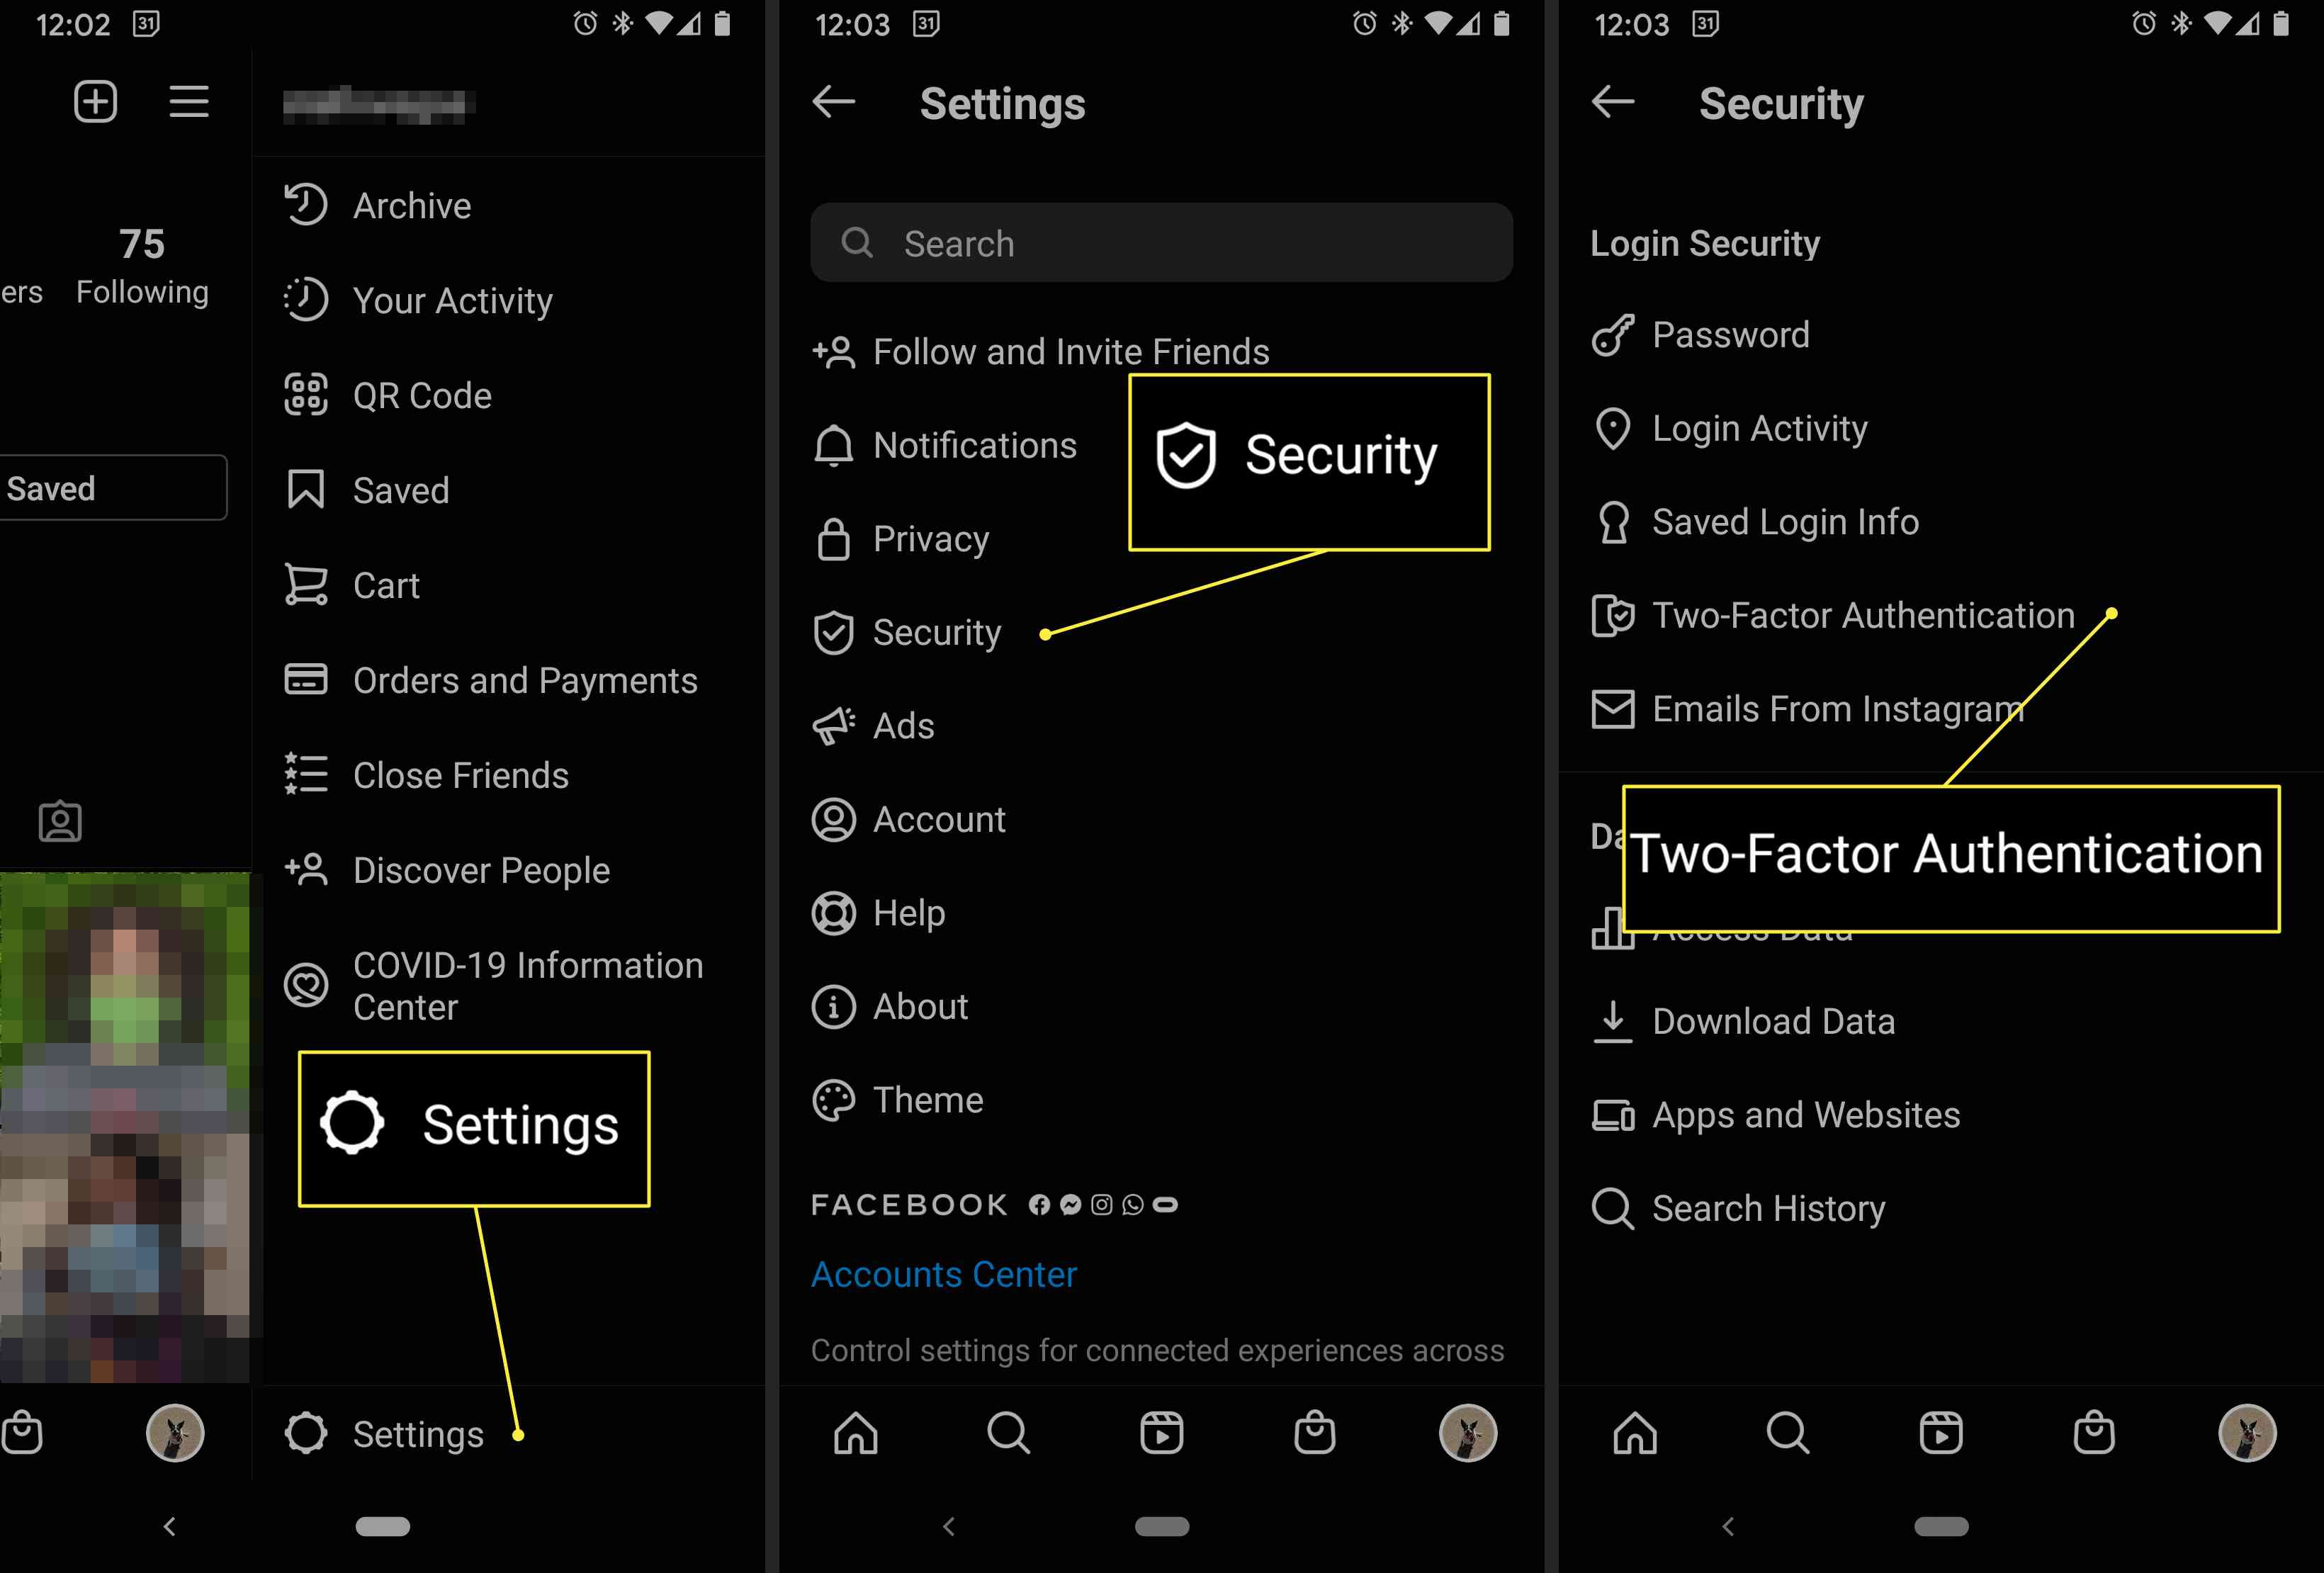 Instagram settings with the steps needed to enable two-factor authentication highlighted